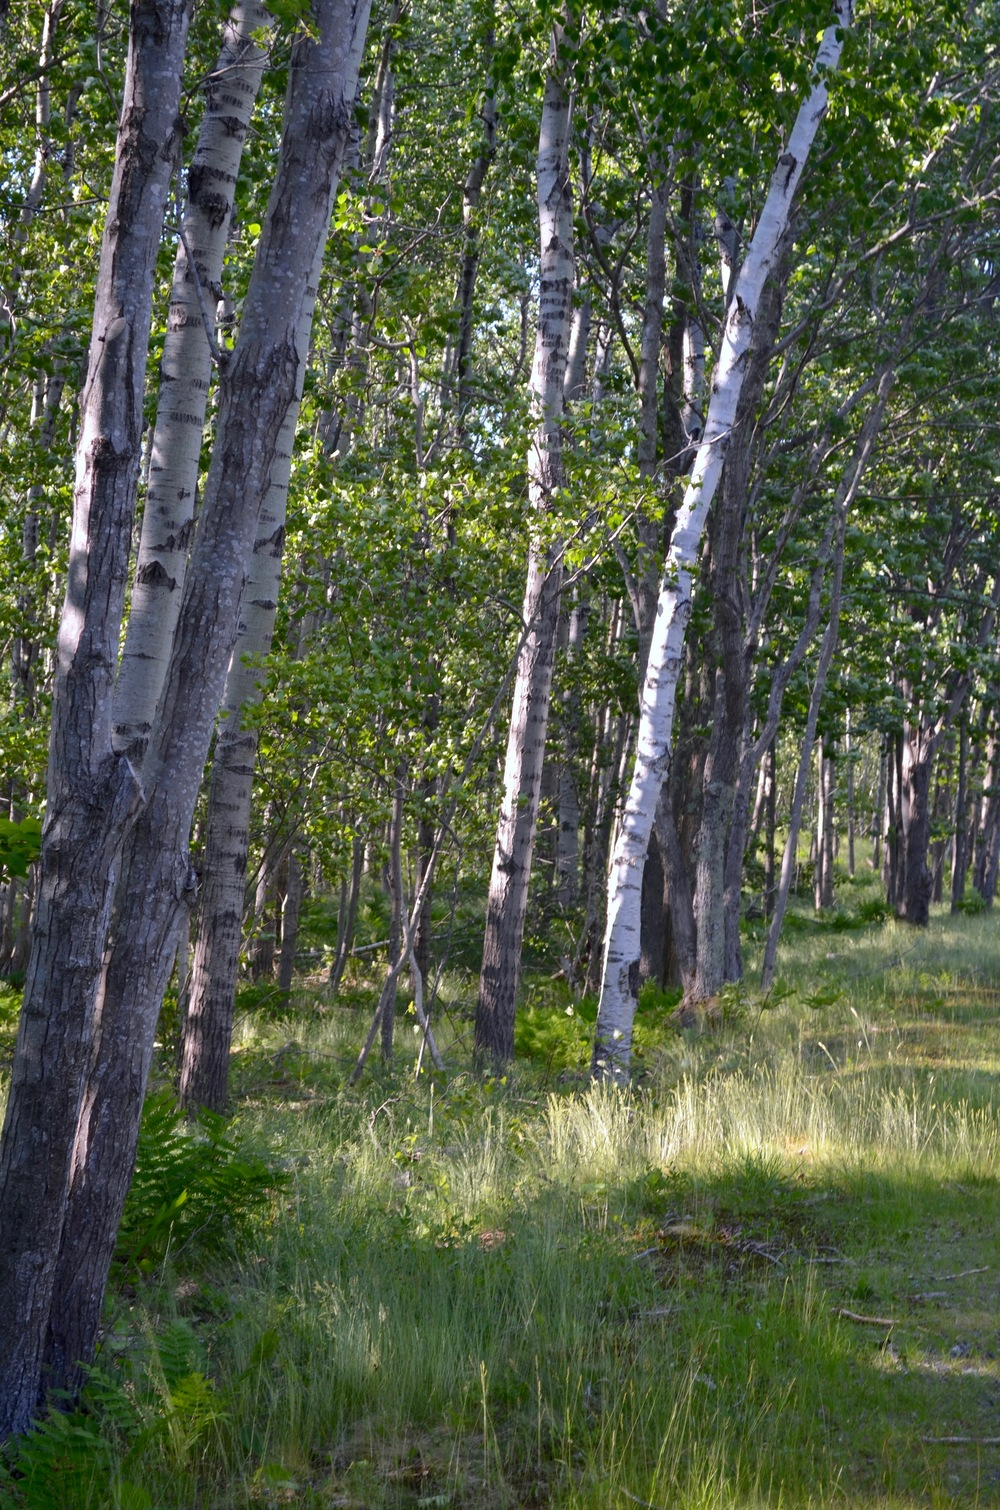 Birch groves are everywhere in the park